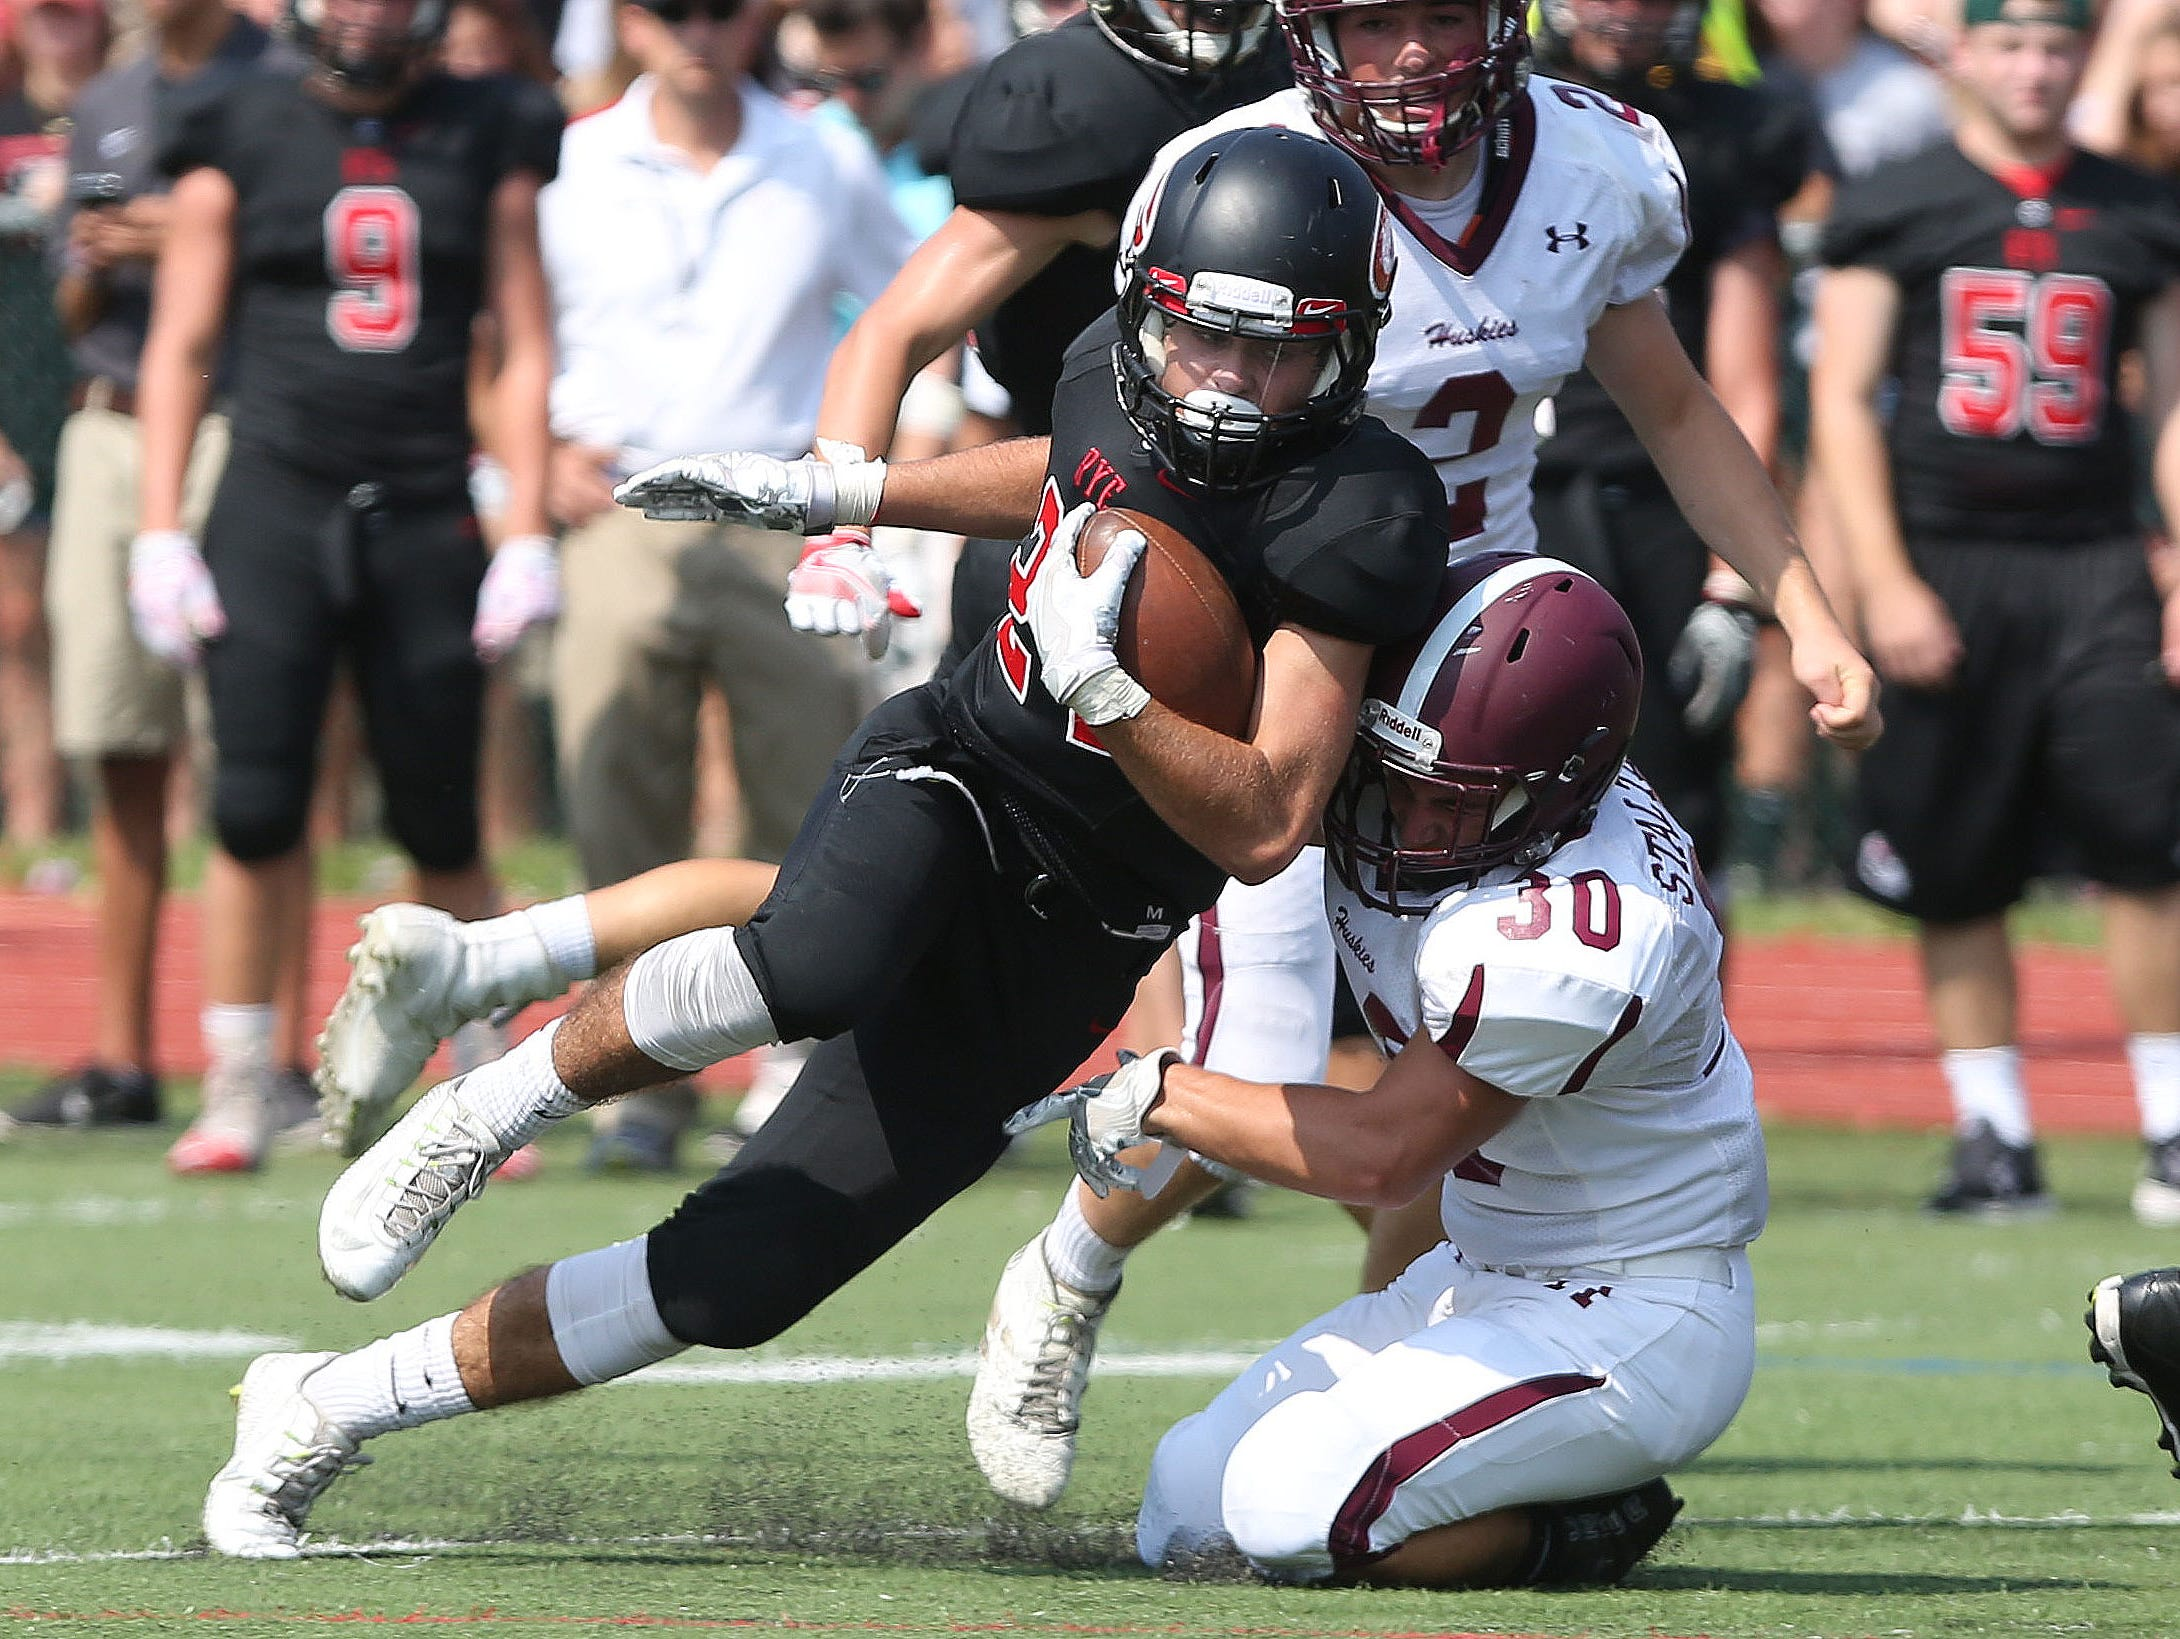 Rye's James Chabot (24) tries to get around Harrison's Kyle Stalteri (30) during first half action in the annual rivalry game at Nugent Stadium at Rye High School Sept. 10, 2016. Rye won the game 42-12.